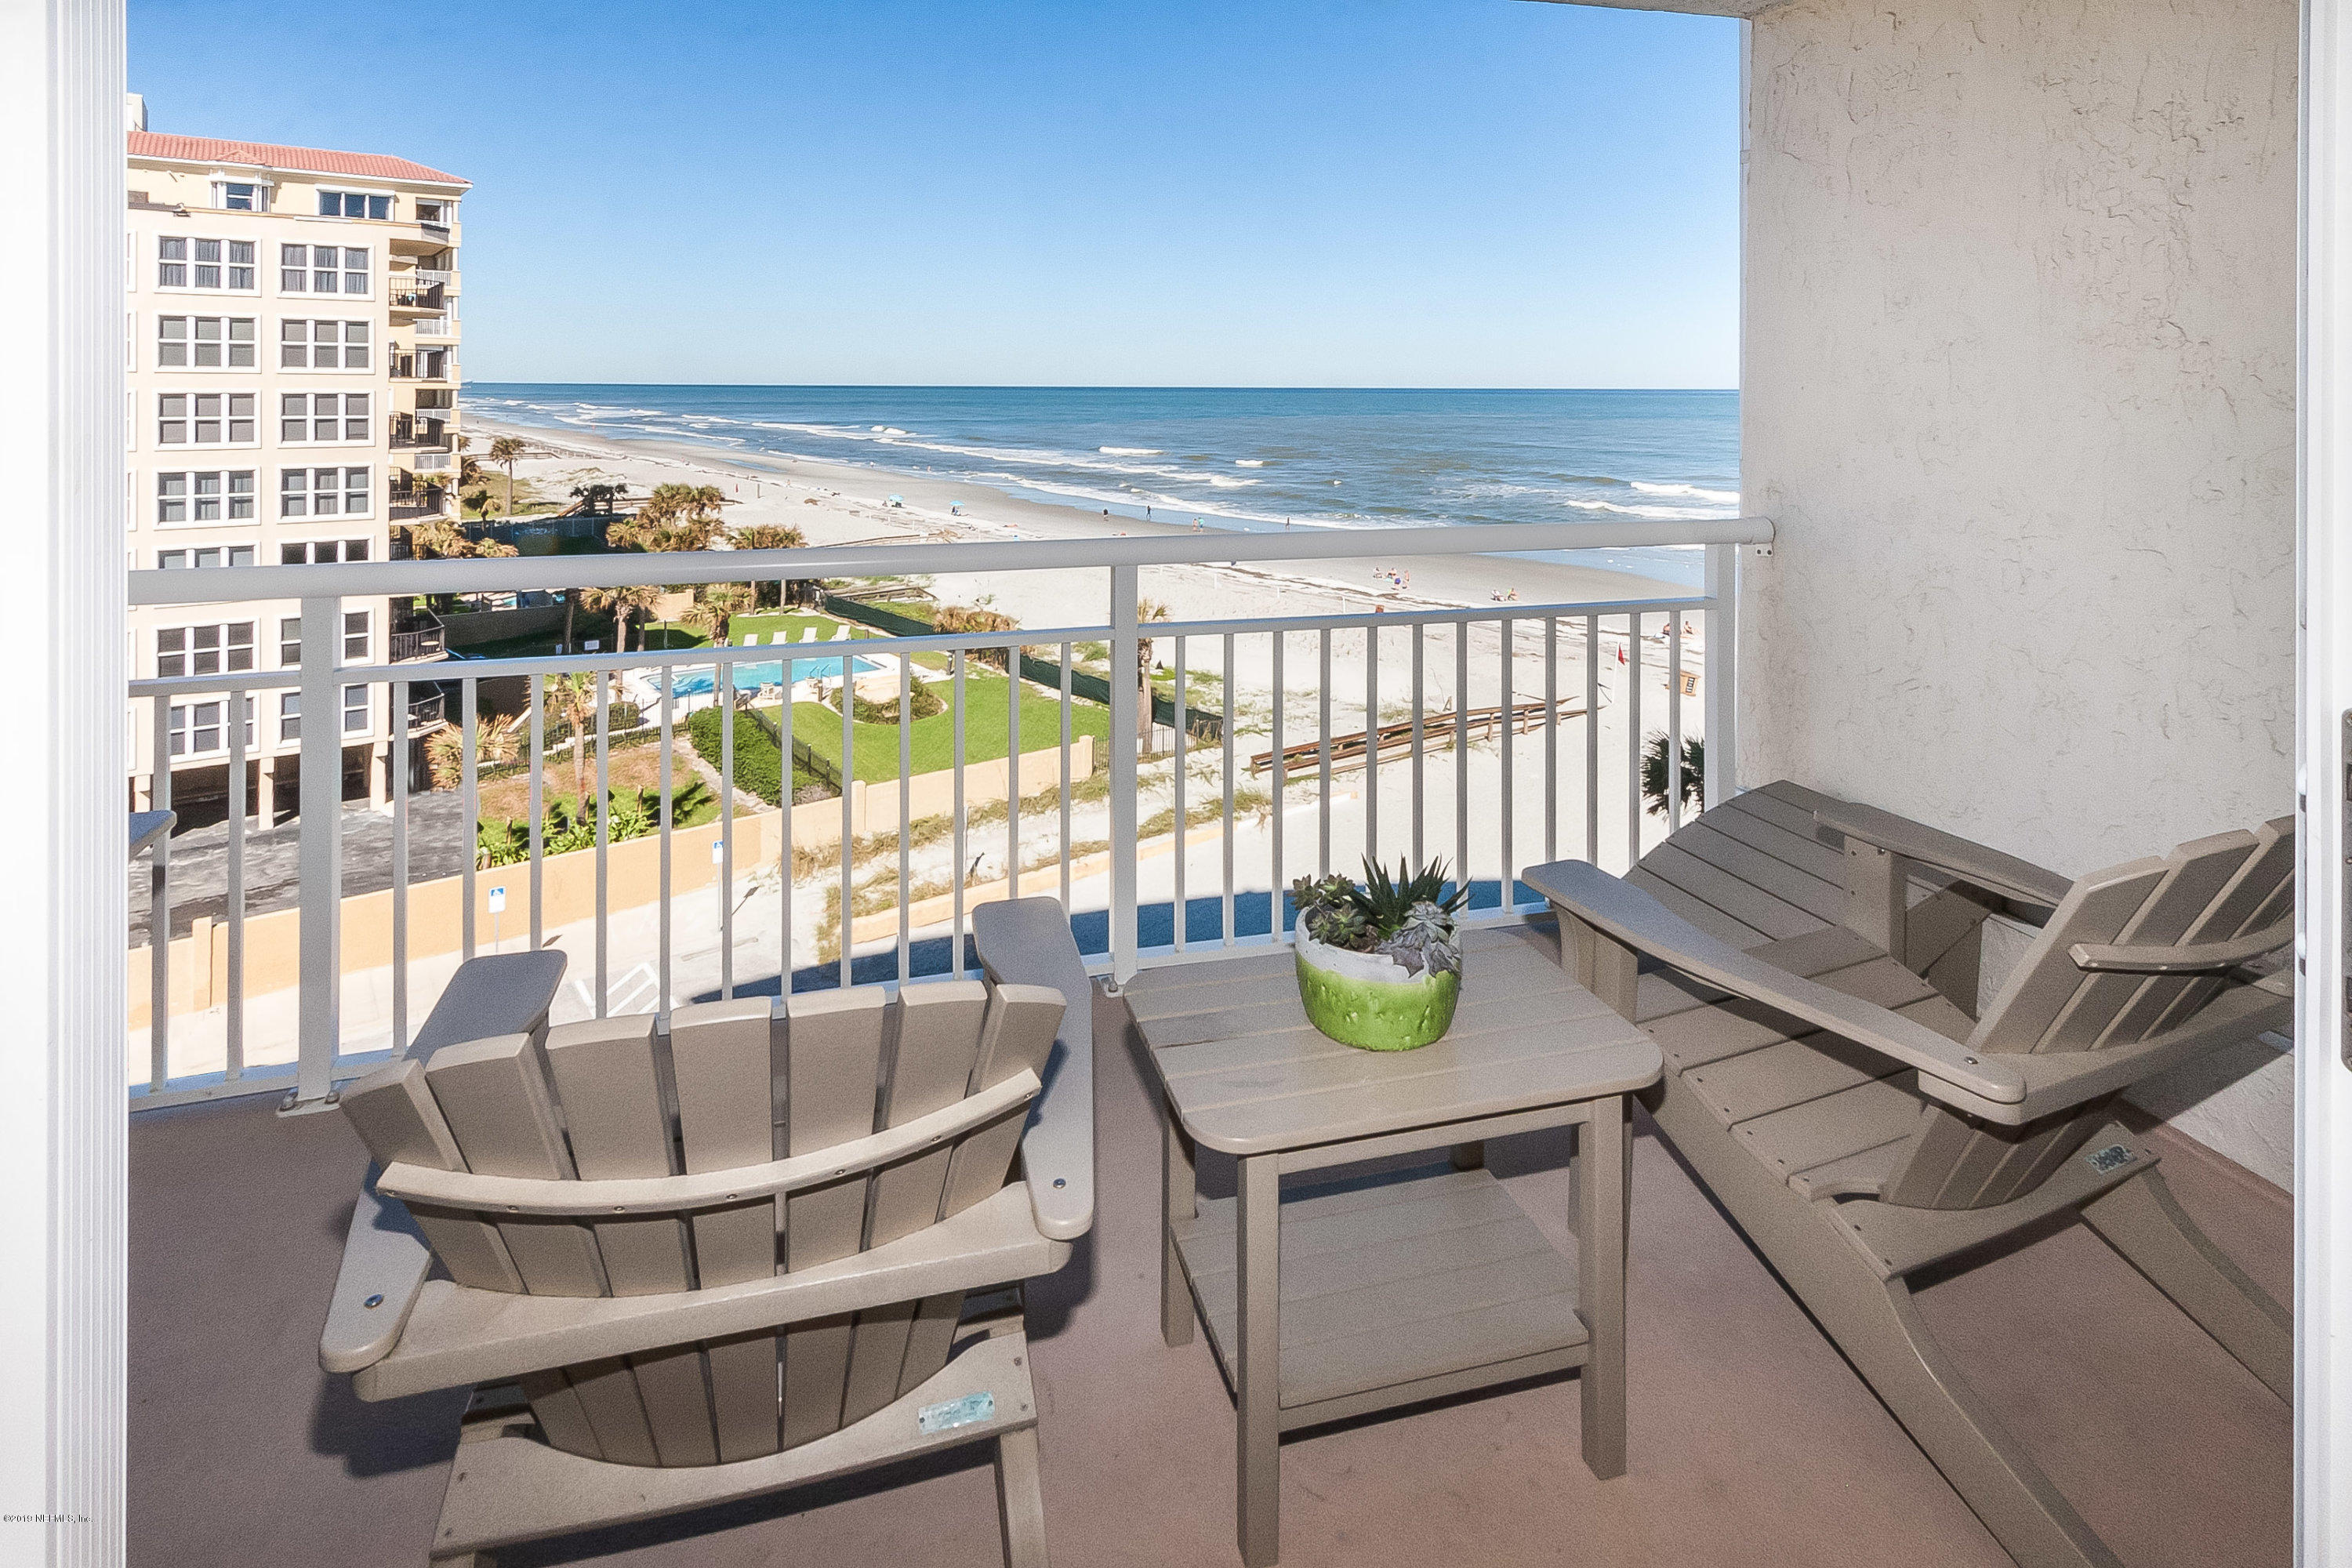 1601 OCEAN, JACKSONVILLE BEACH, FLORIDA 32250, 2 Bedrooms Bedrooms, ,2 BathroomsBathrooms,Condo,For sale,OCEAN,993175